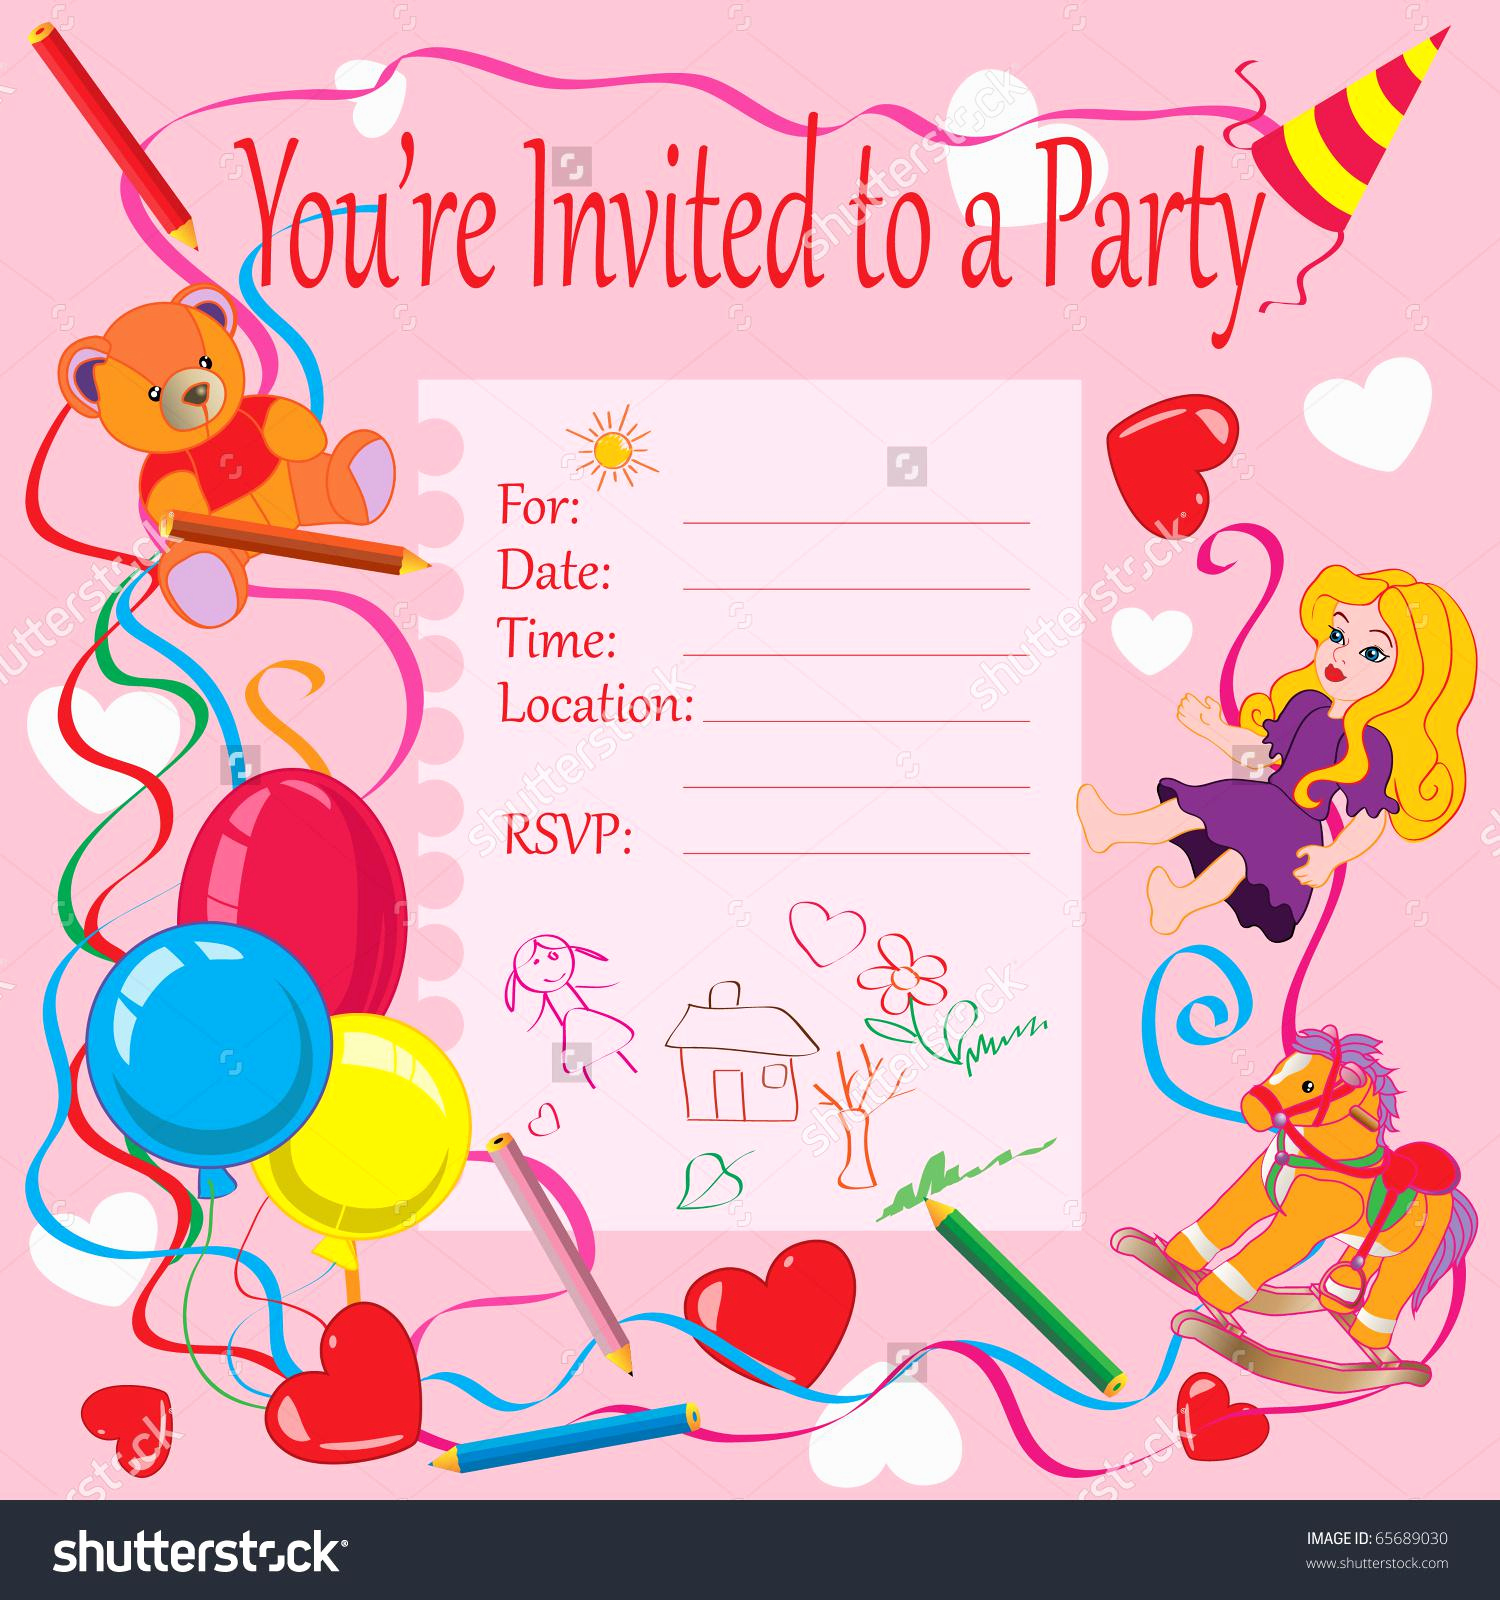 Birthday Invitation Card Sample Inspirational 20 Birthday Invitations Cards – Sample Wording Printable